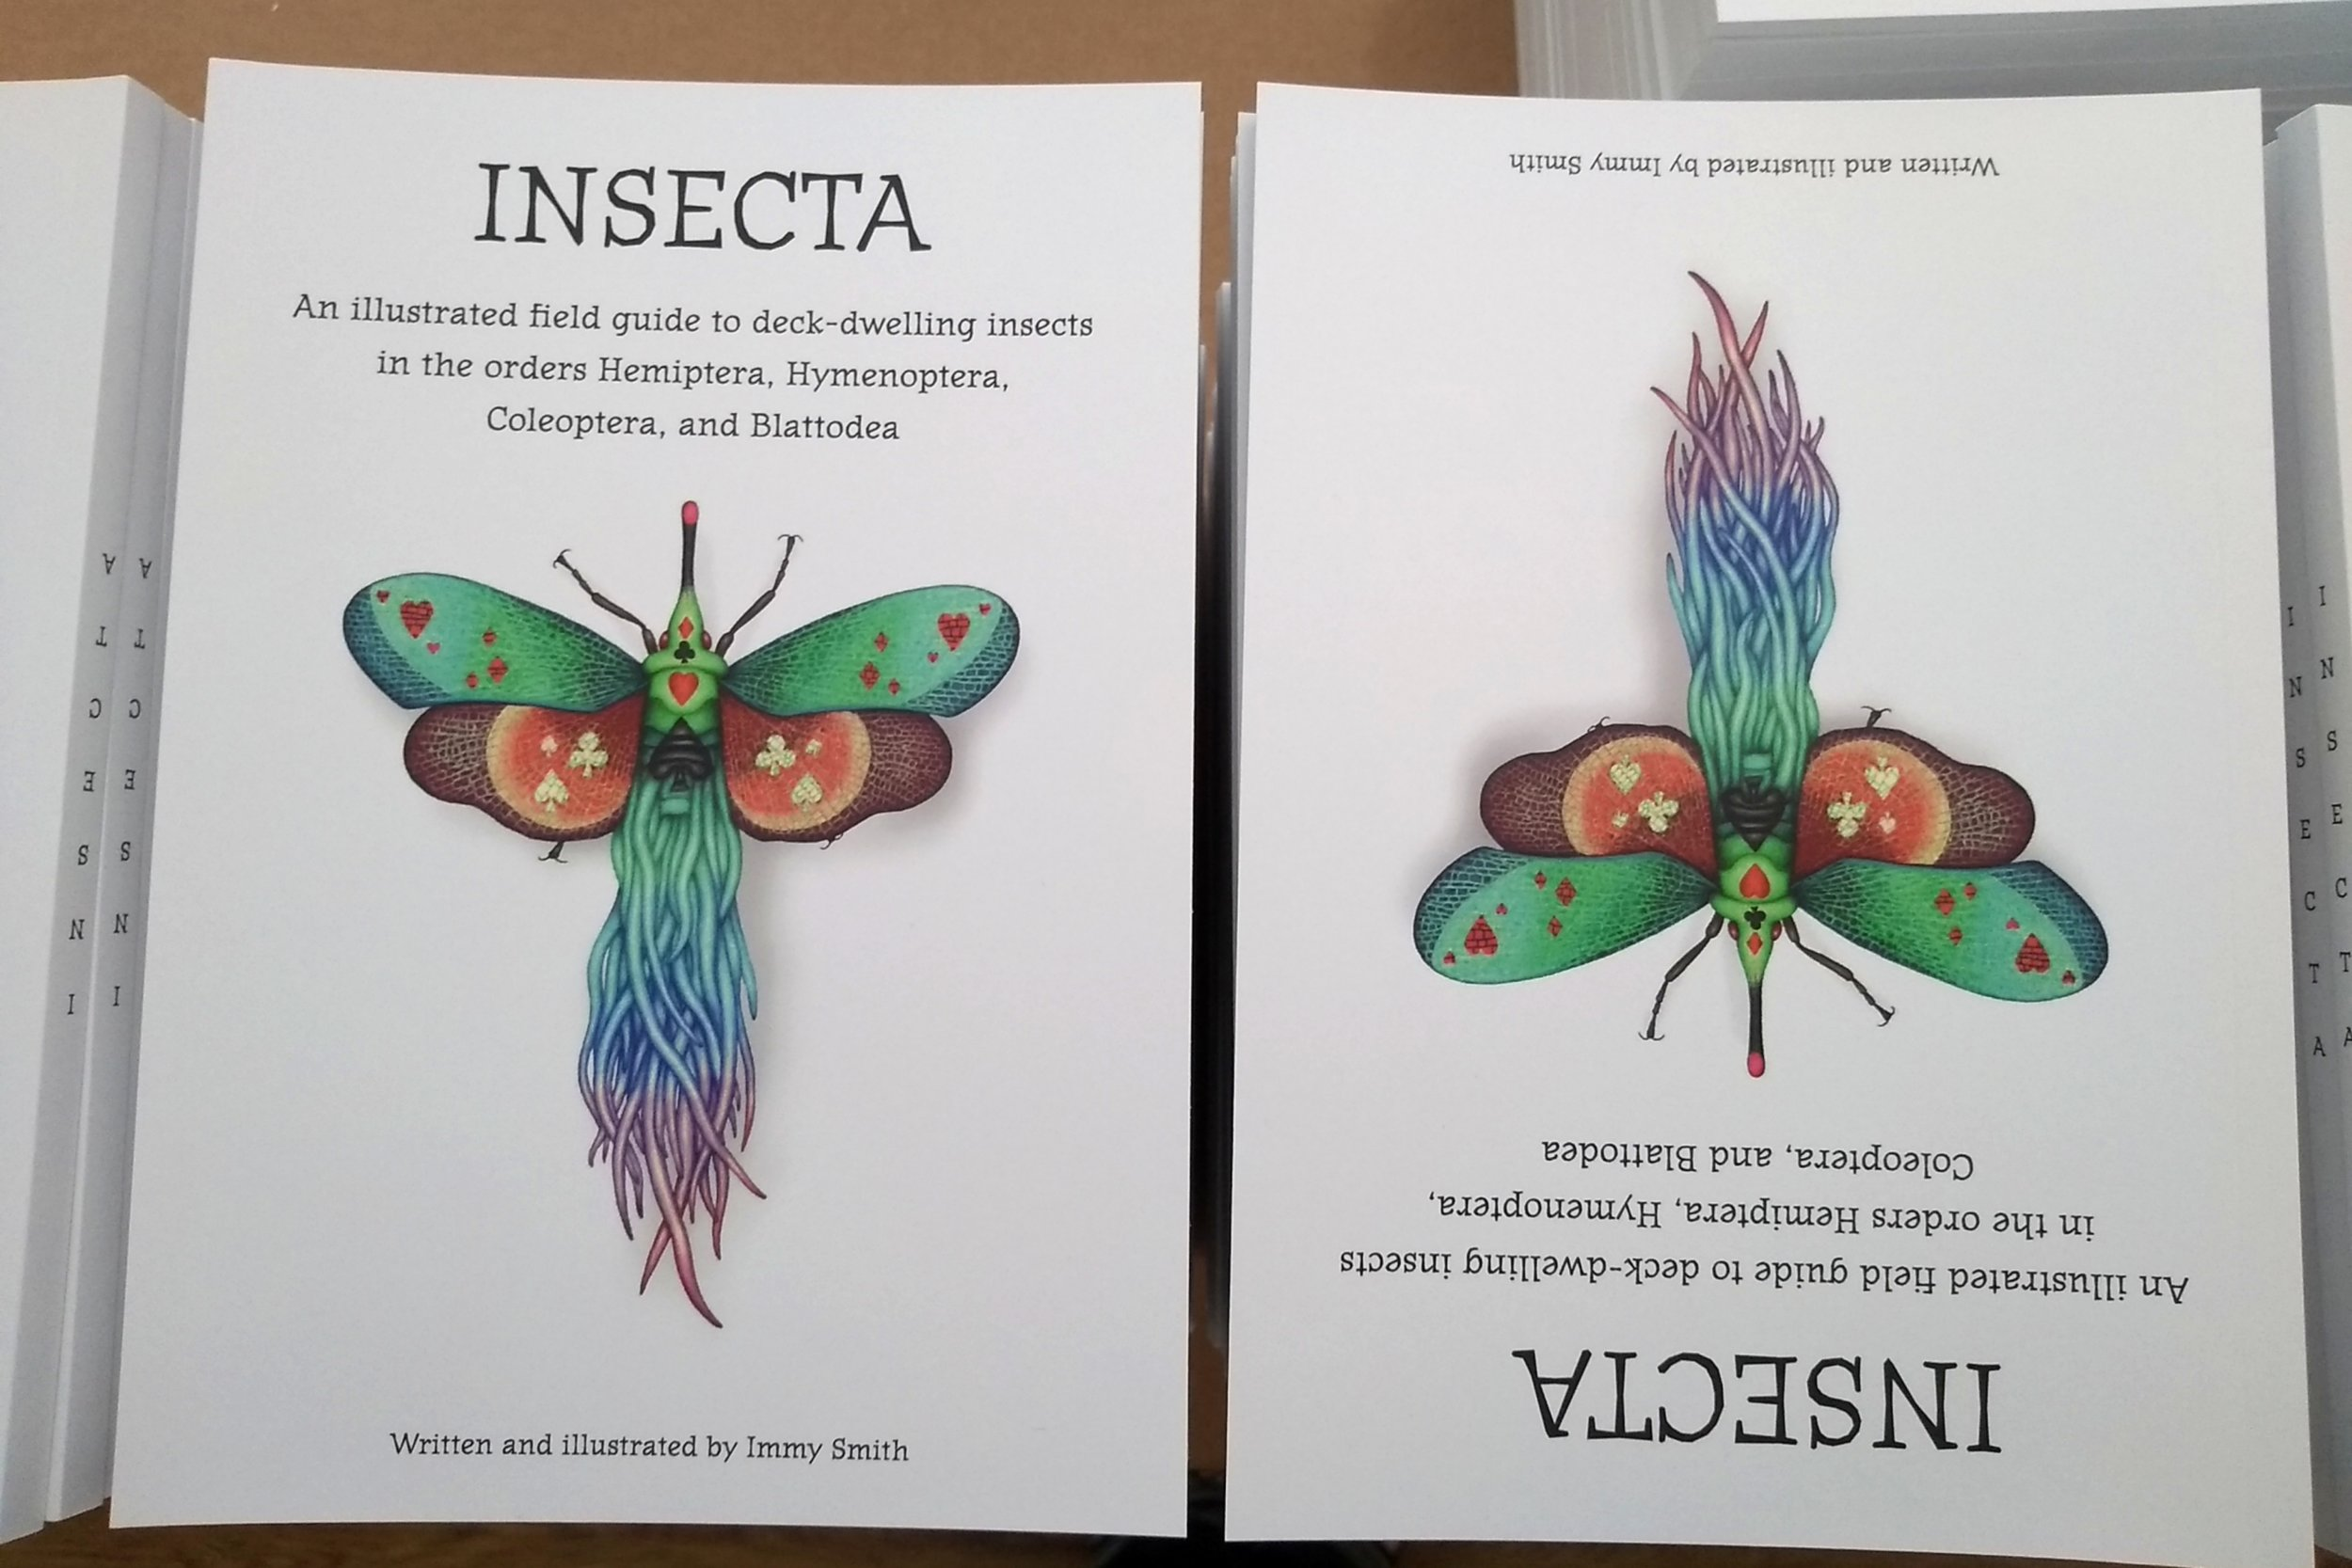 Image description; The cover of my new artbook, called Insecta, which has a very colourful bug on it